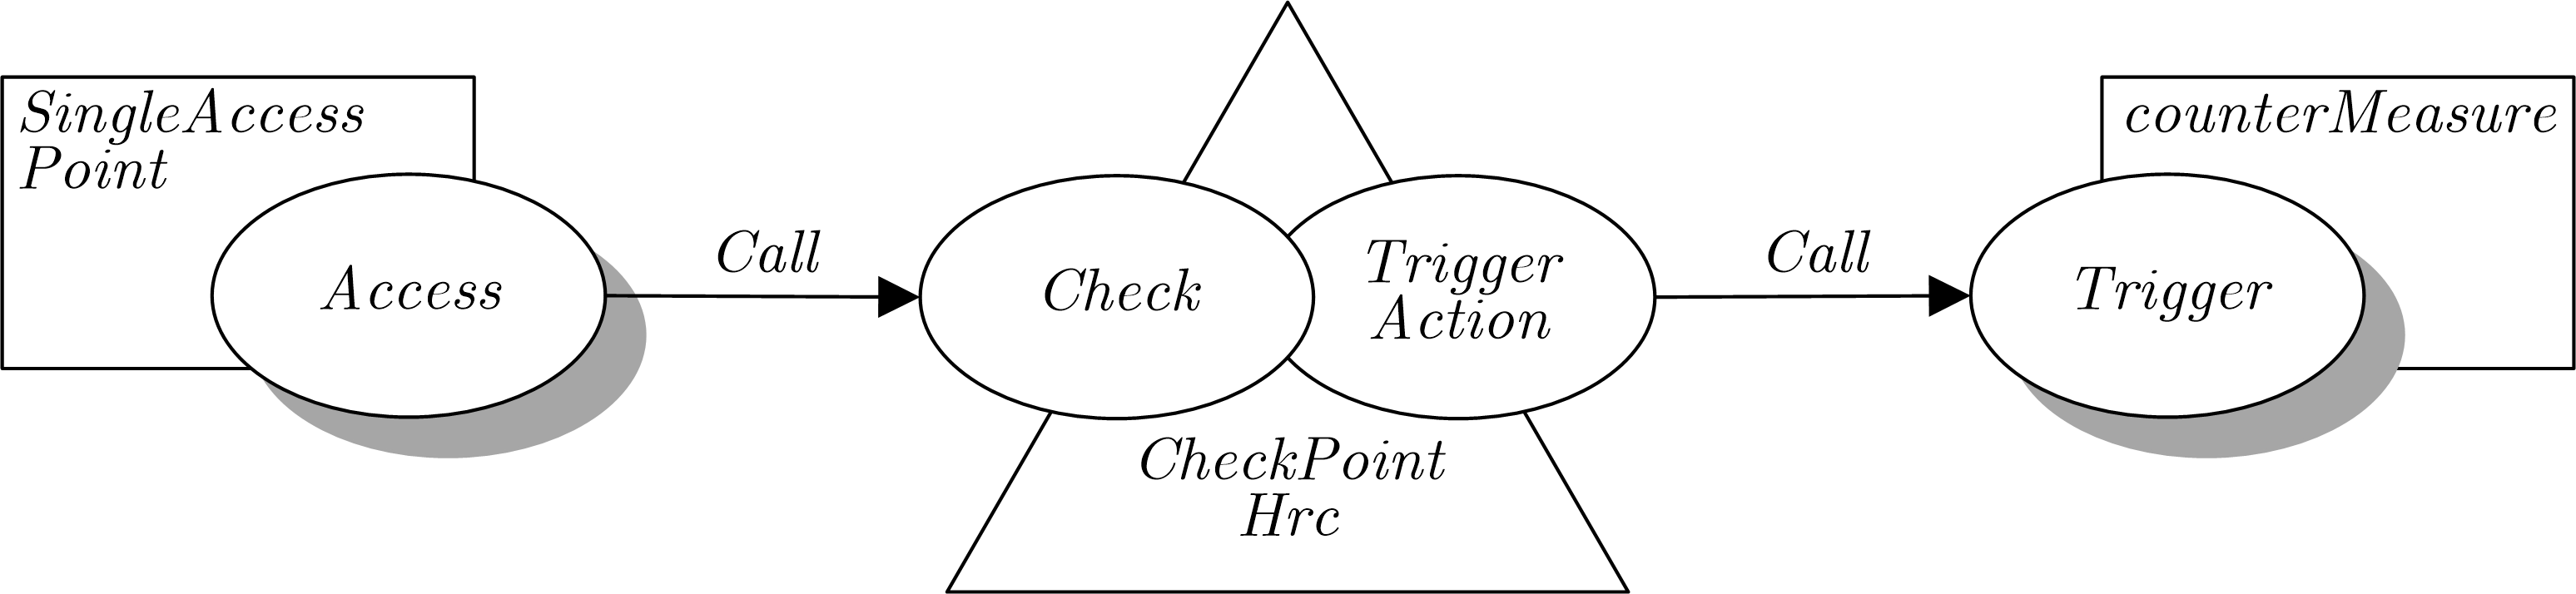 Codechart of the Check-Point Pattern